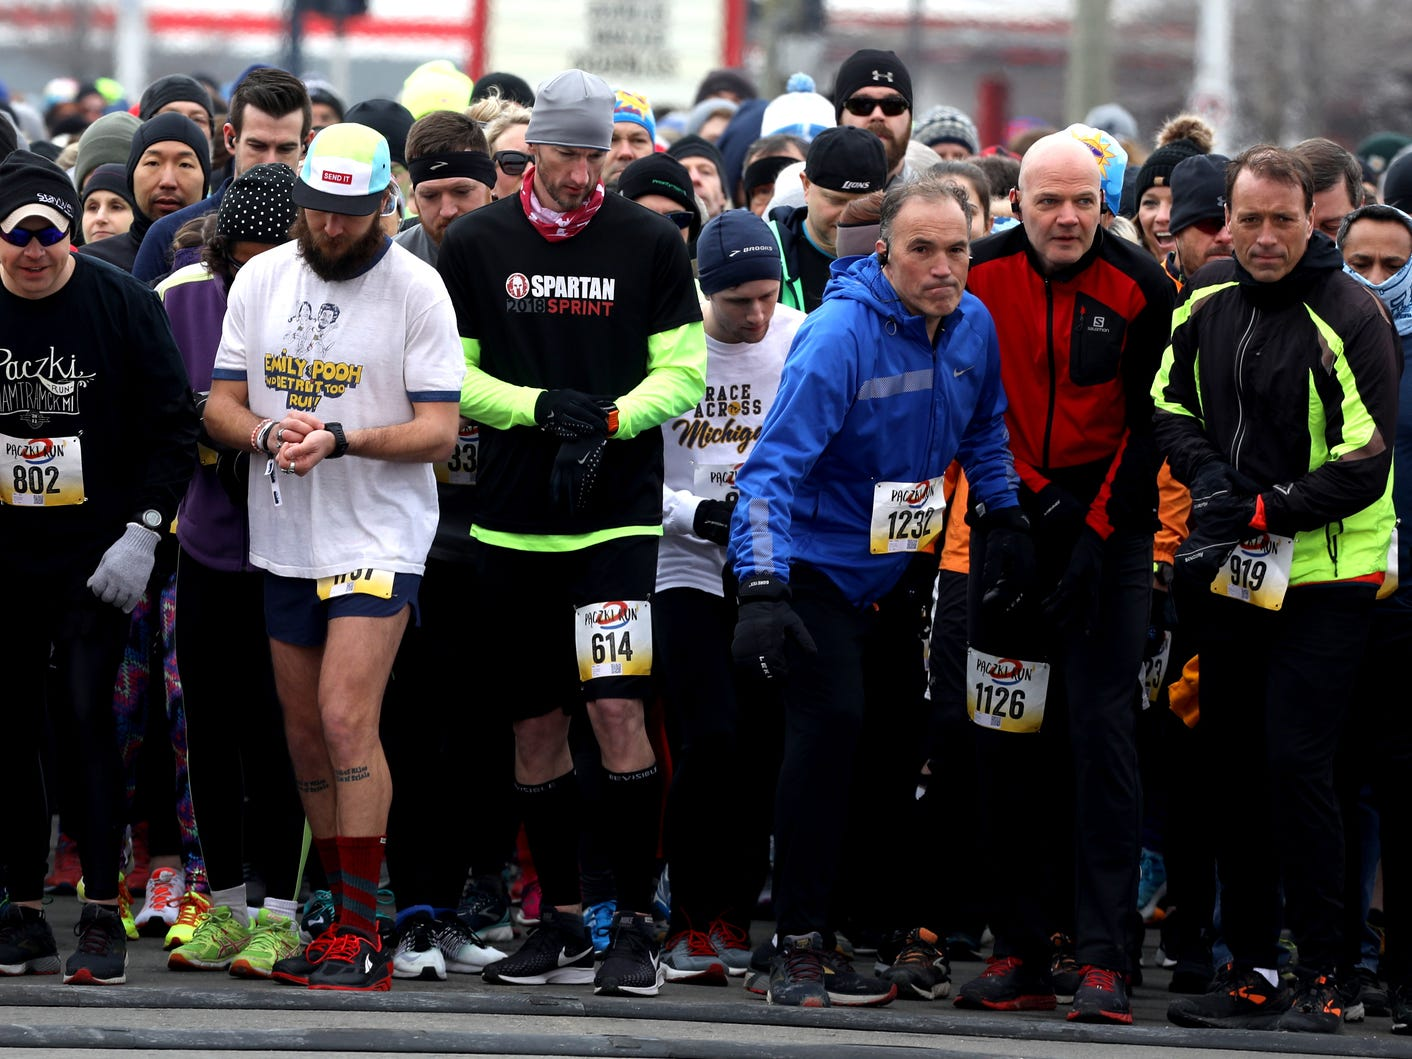 Runners lean forward as the countdown hits zero to start the 2019 Paczki 5K run through the streets and neighborhoods of downtown Hamtramck on Saturday, March 2, 2019.